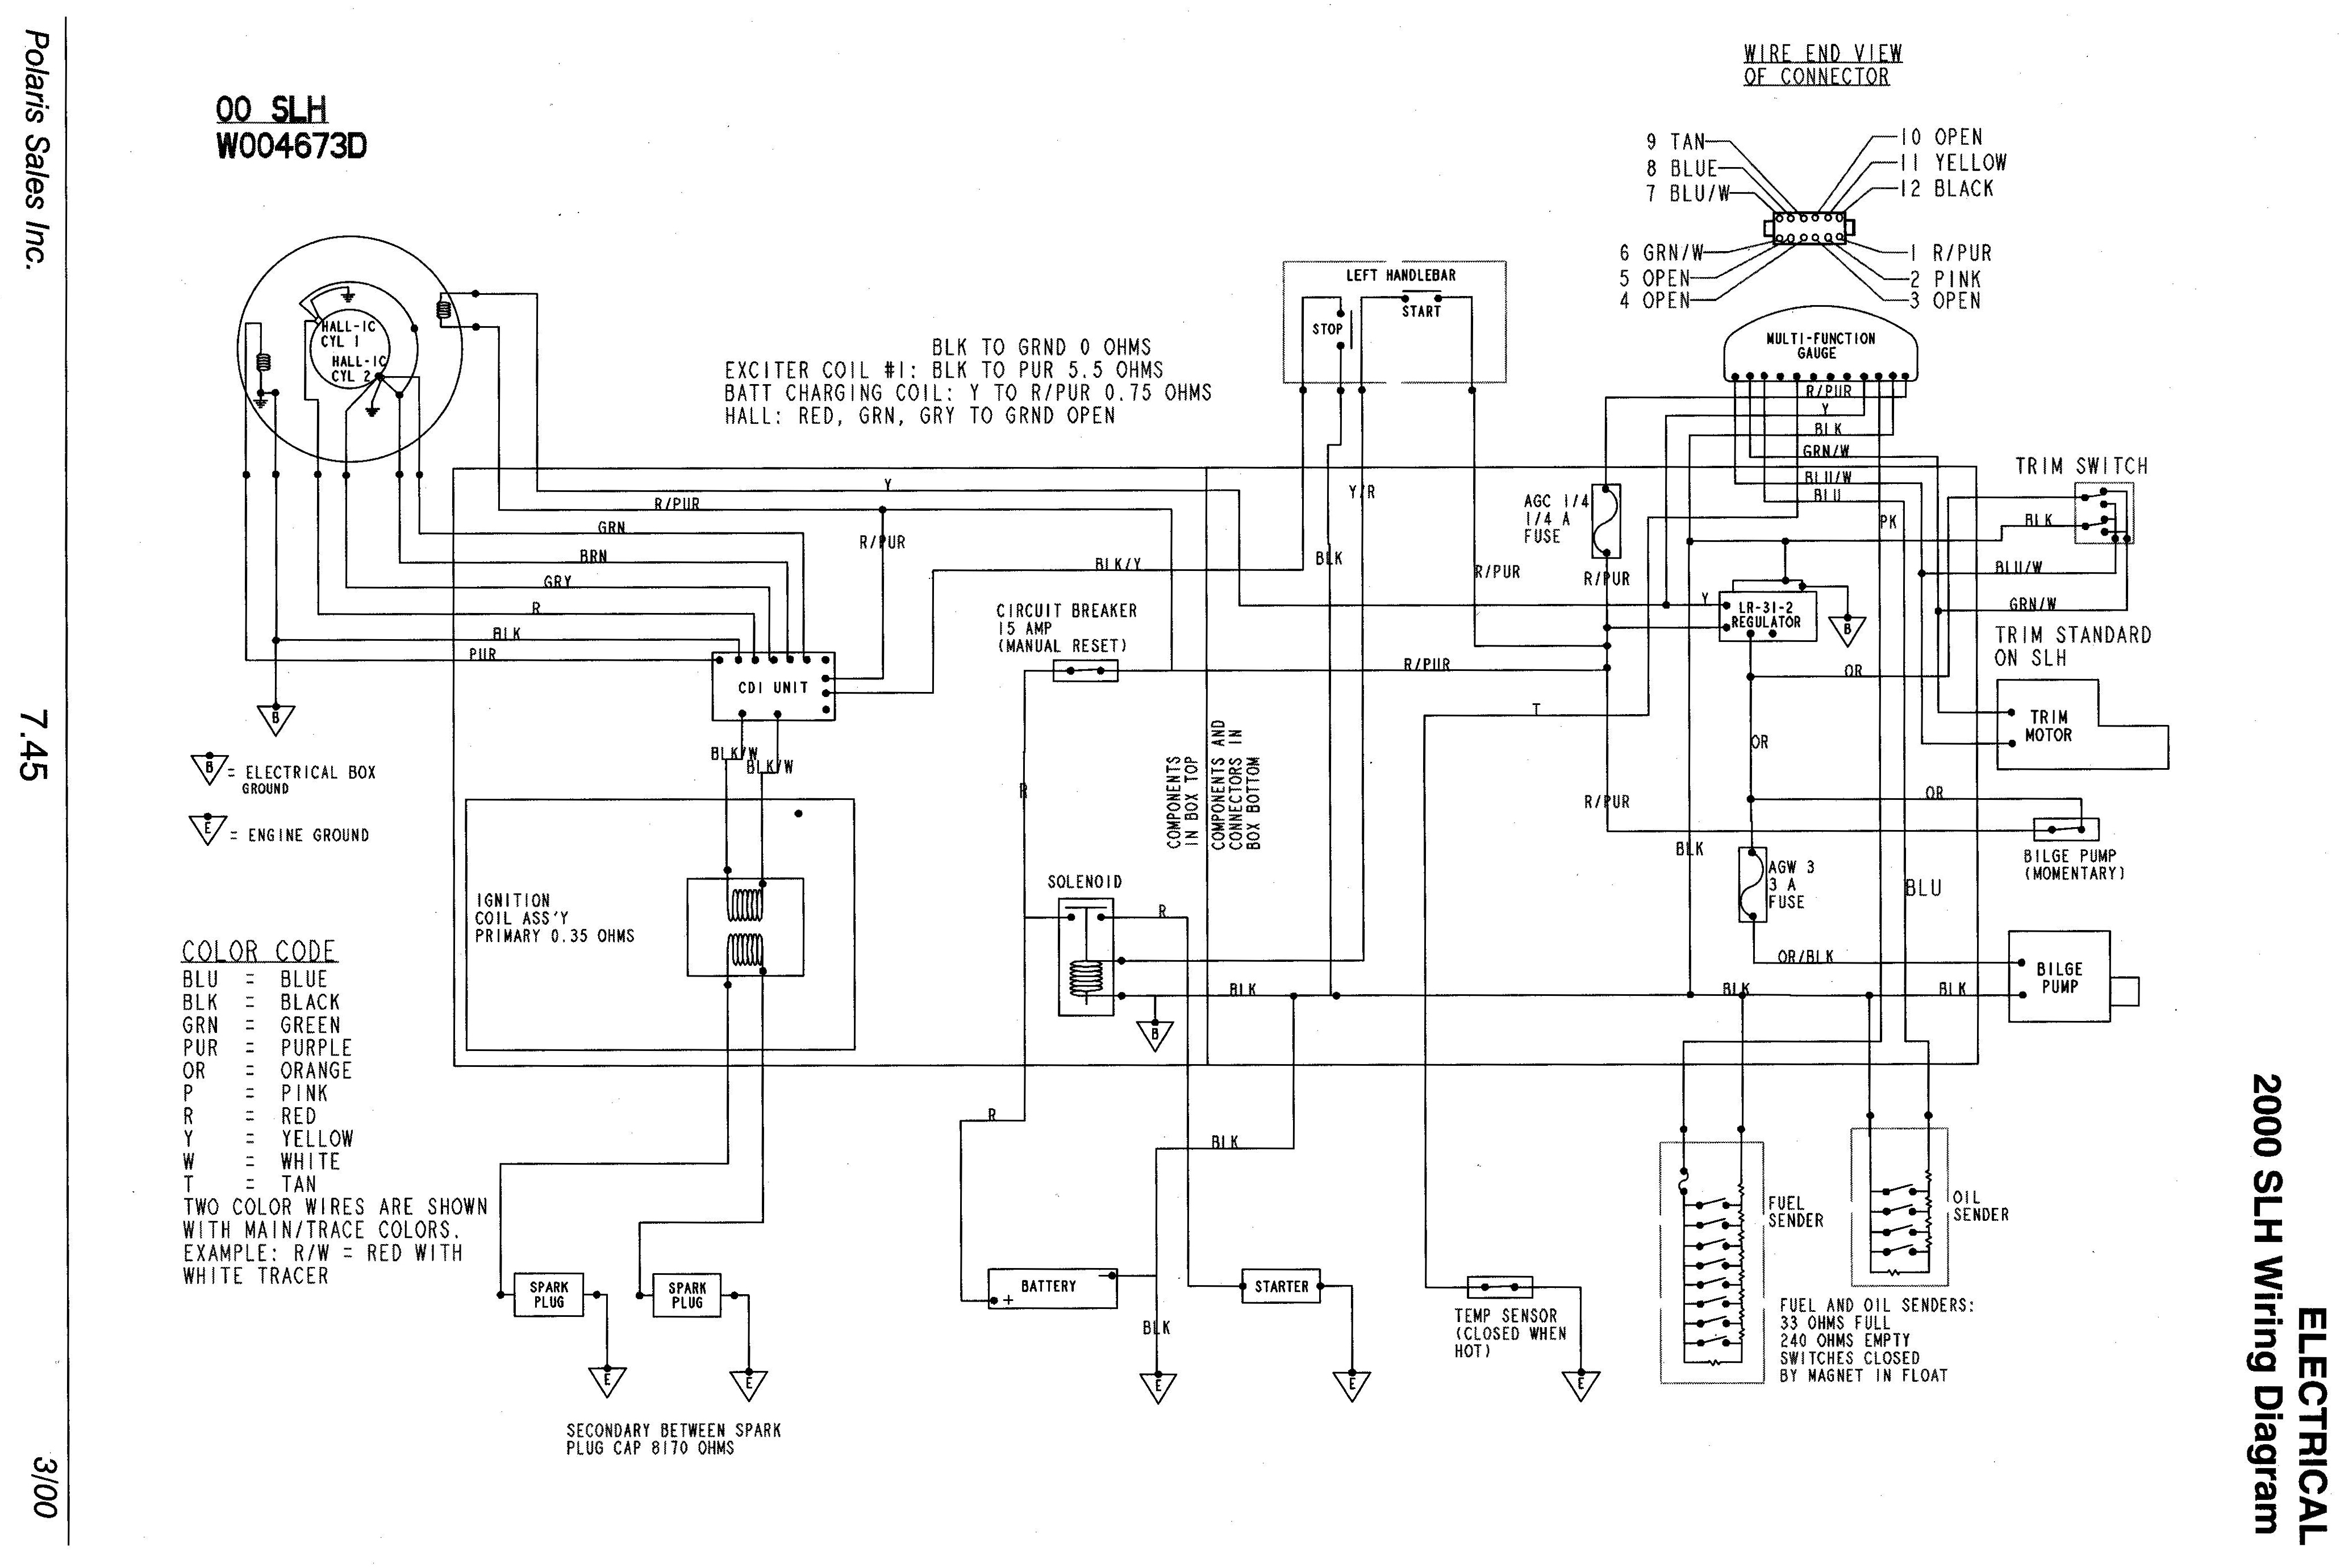 tn75d wire diagrams fo ac tn75d auto wiring diagram schematic sea doo trim wiring diagram diagram of 3 4l v6 engine daisy chain on tn75d wire